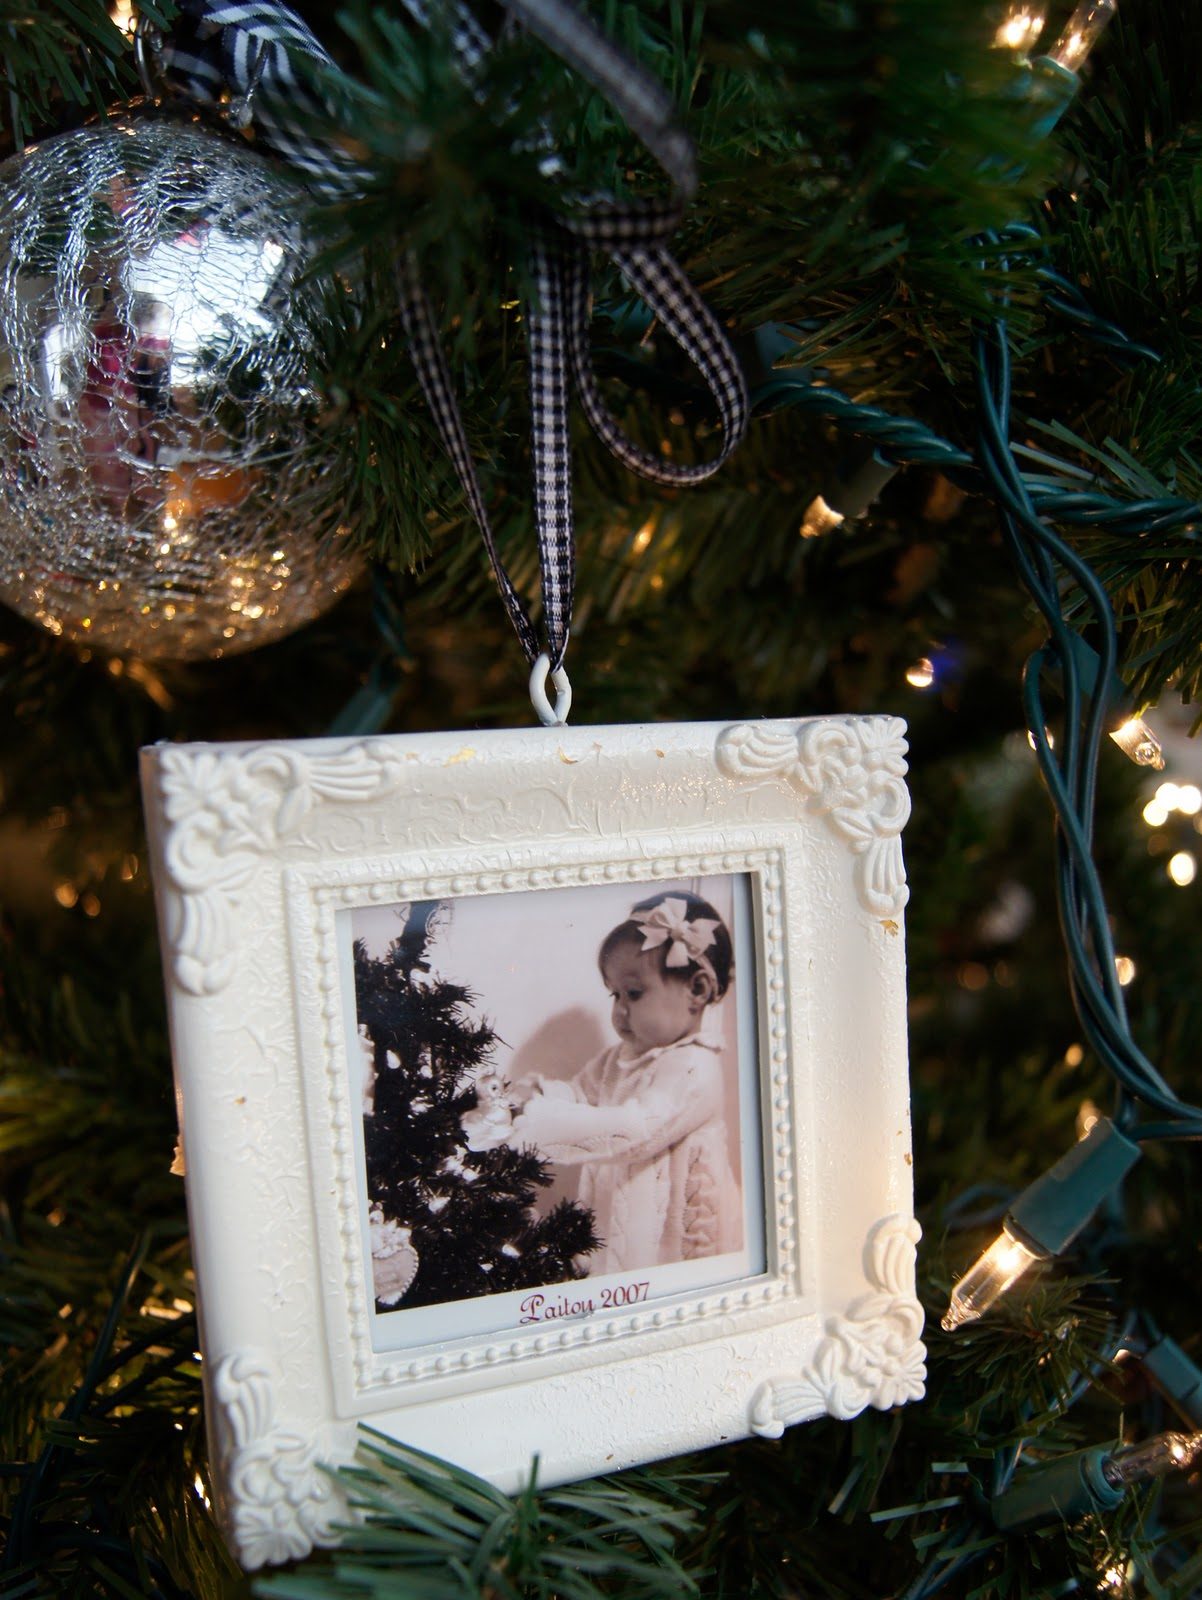 Christmas tree picture frame ornaments - I Loved The Frame Ornaments Every Year In The Pottery Barn Catalog So I Decided To Make My Own Version I Frame One Picture From Each Christmas To Hang On